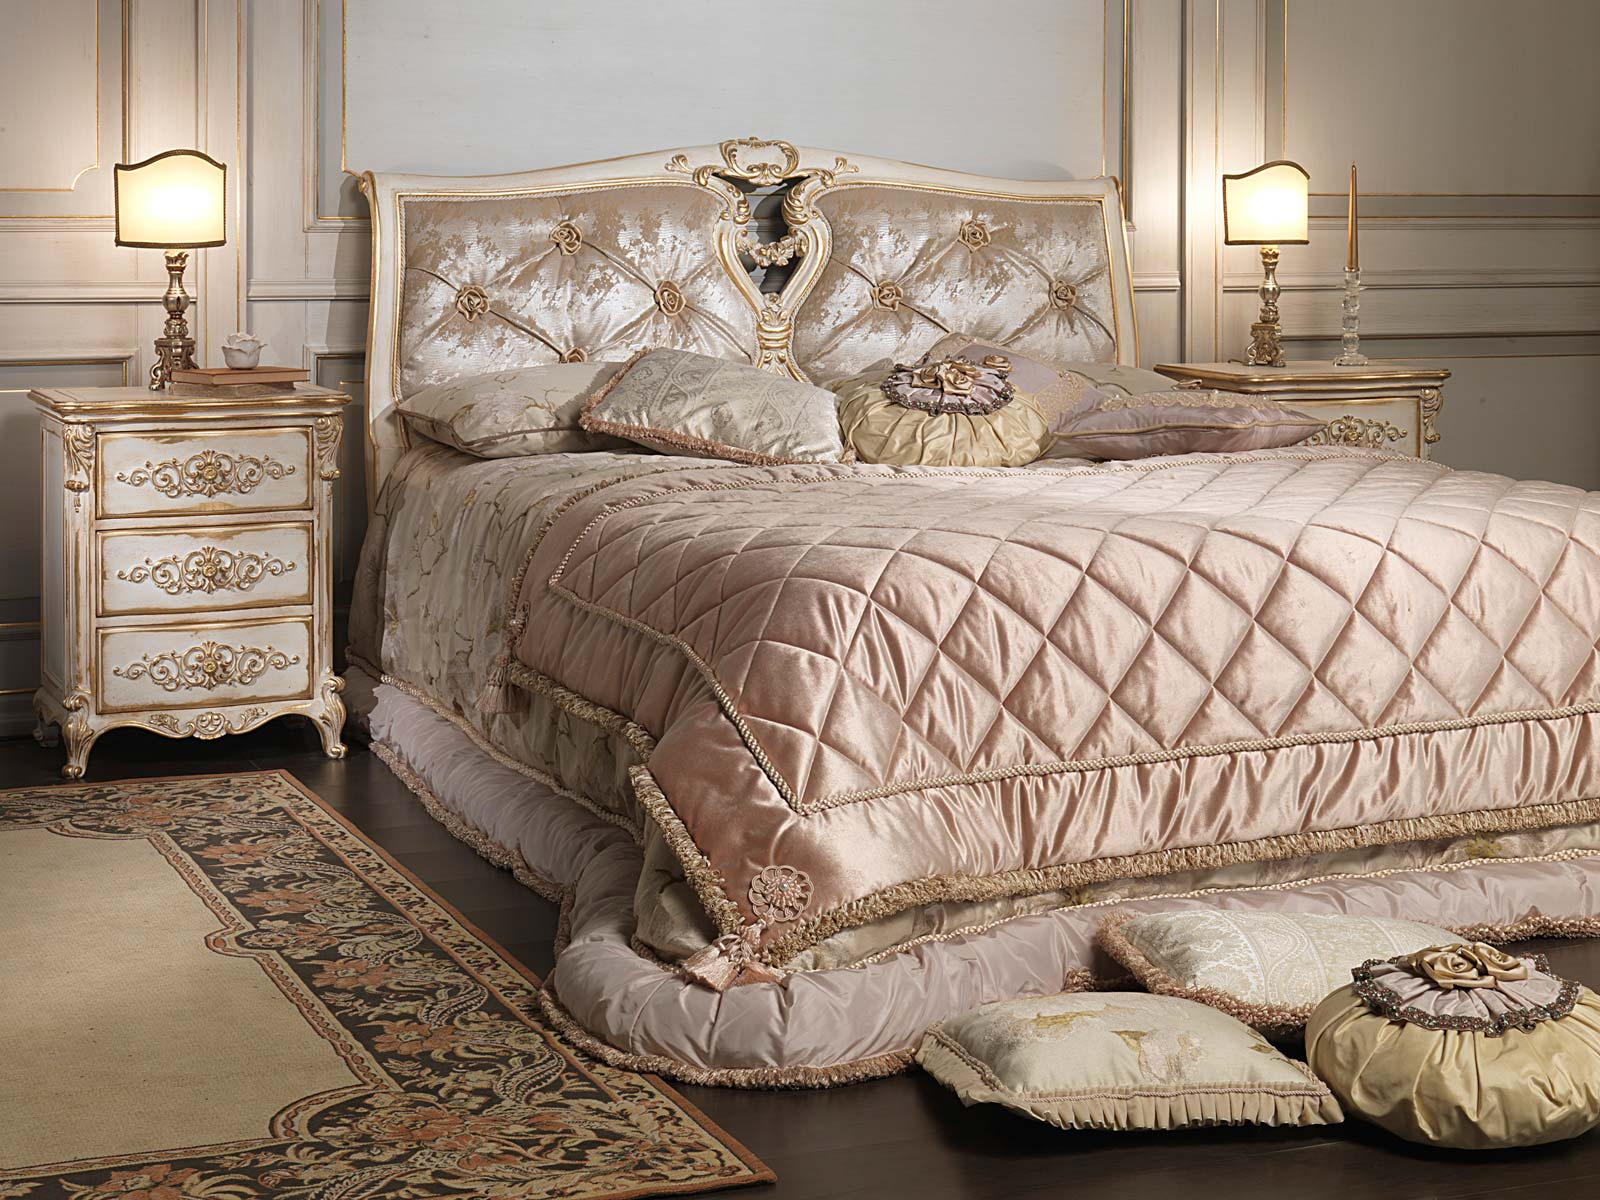 Classic Louis Xvi Bedroom Bed With Capitonn 232 Headboard